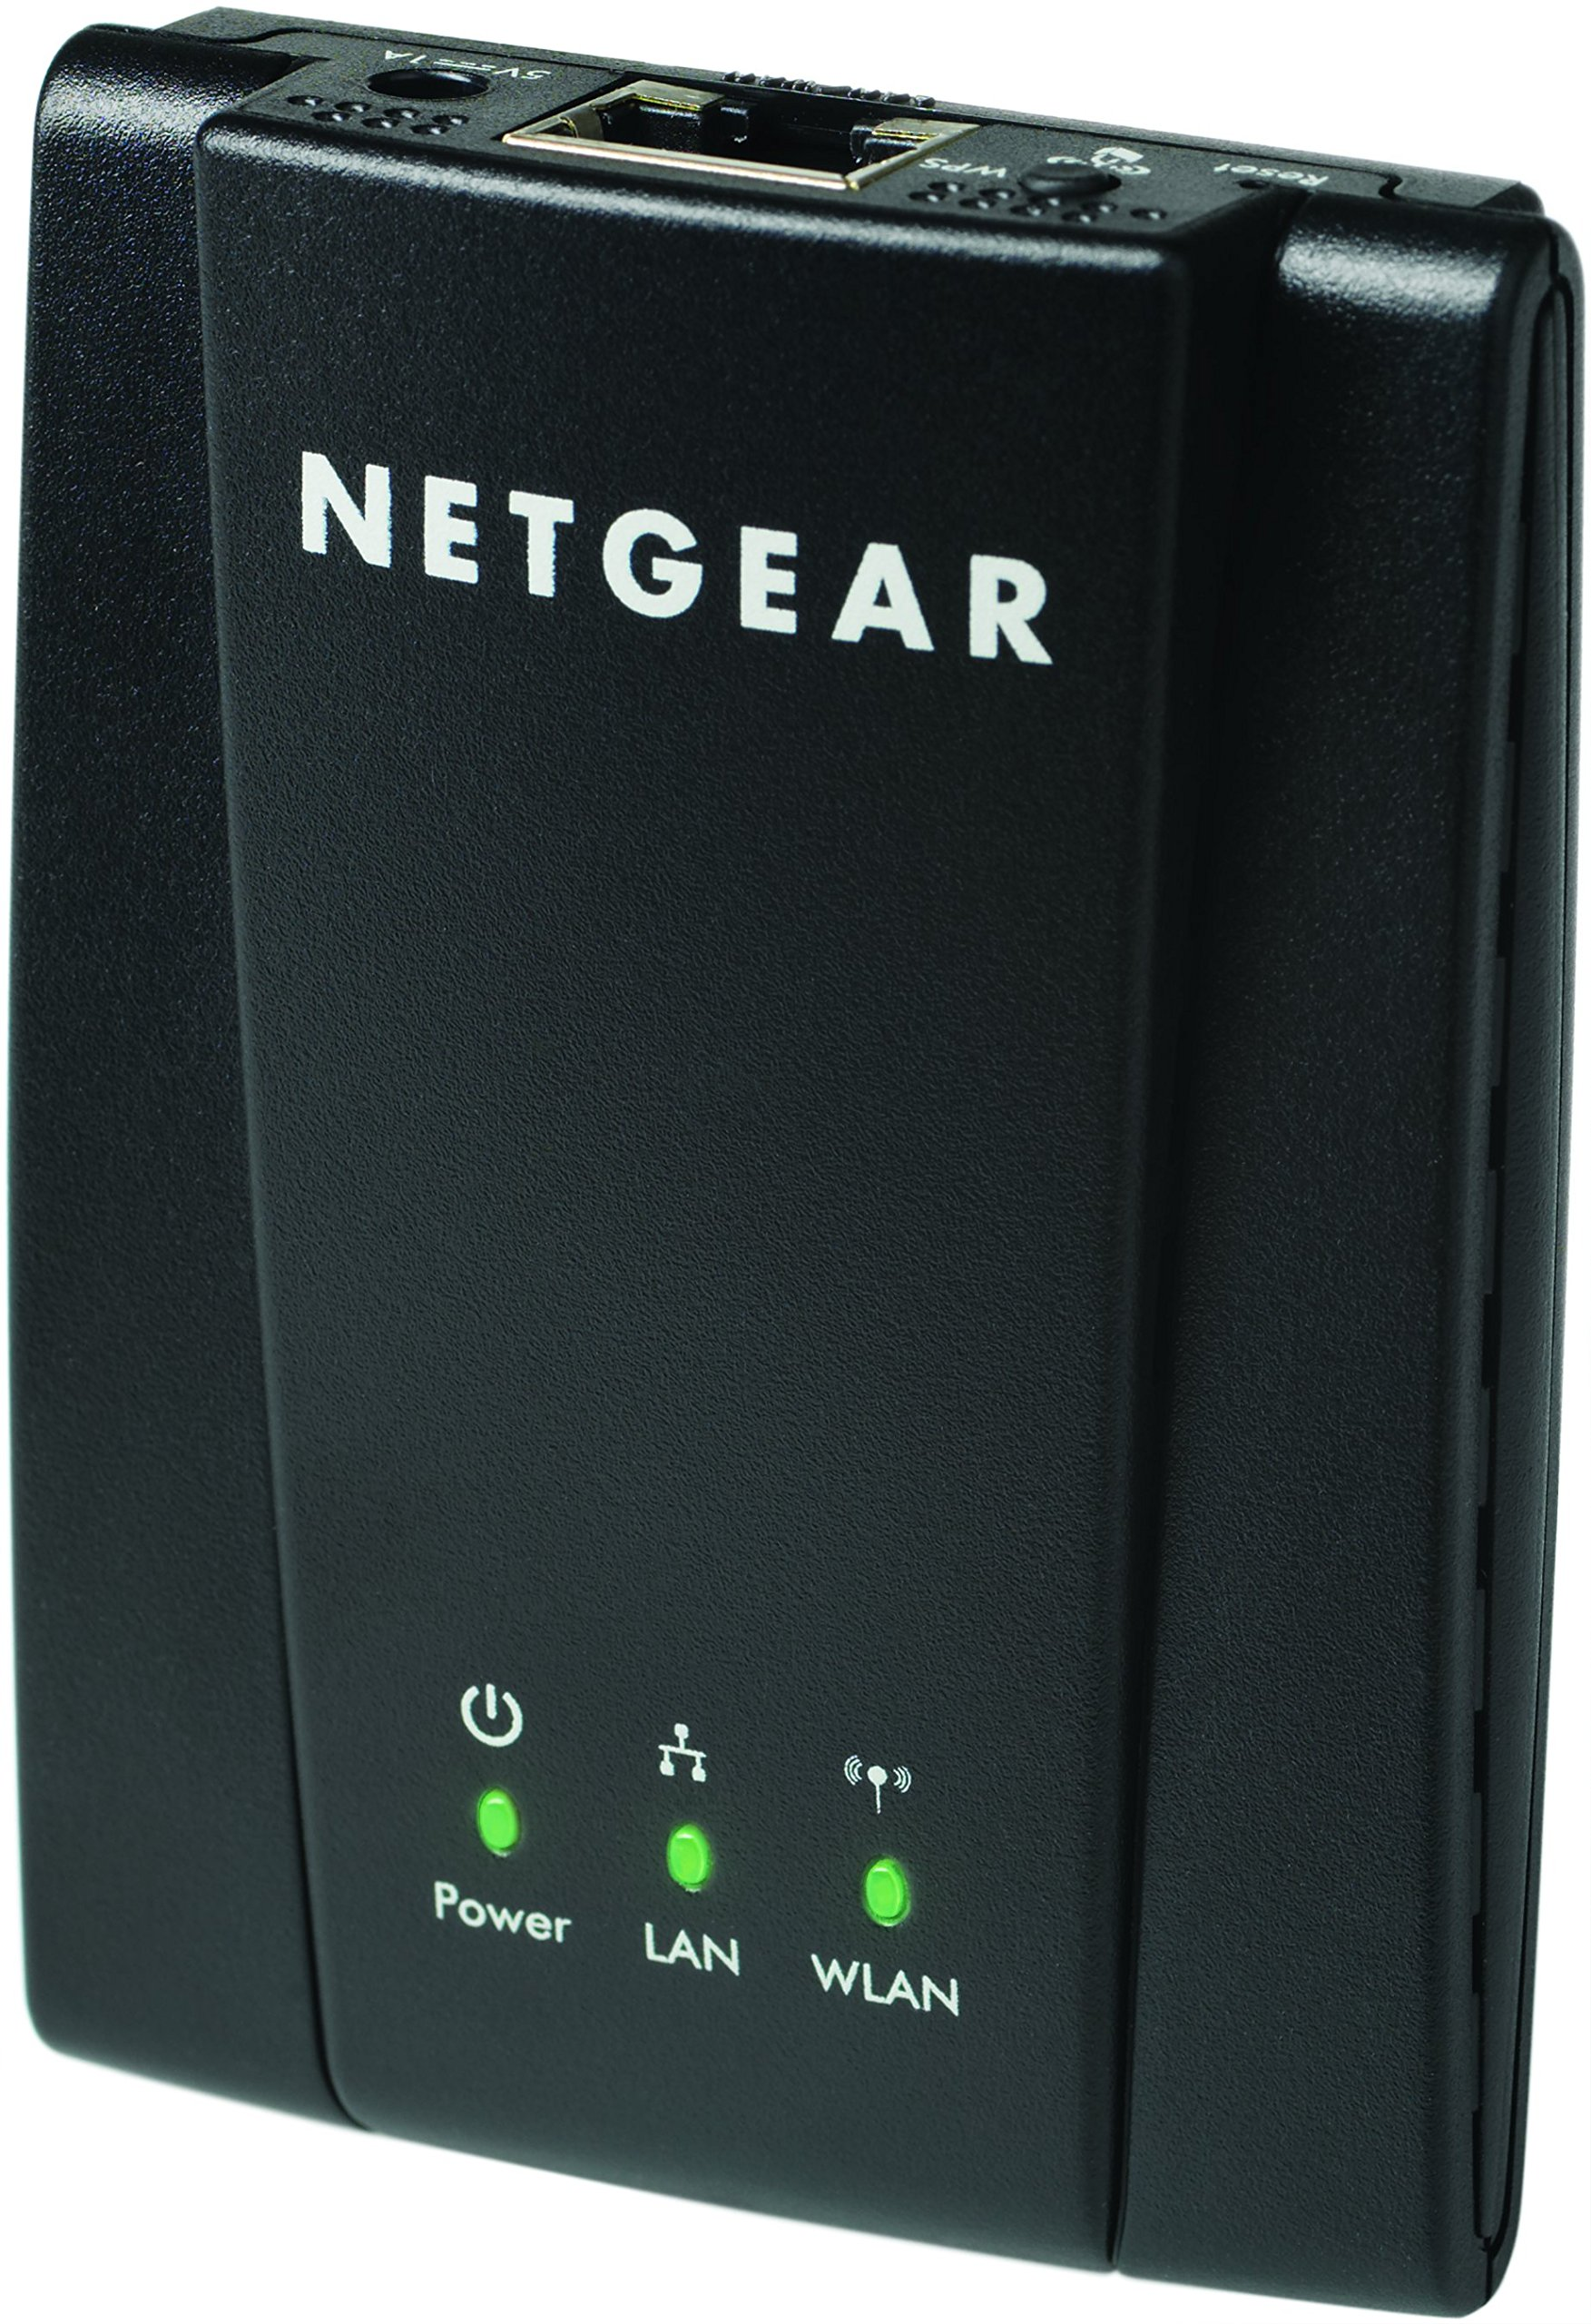 NETGEAR Universal N300 Wi-Fi to Ethernet Adapter (WNCE2001) by NETGEAR